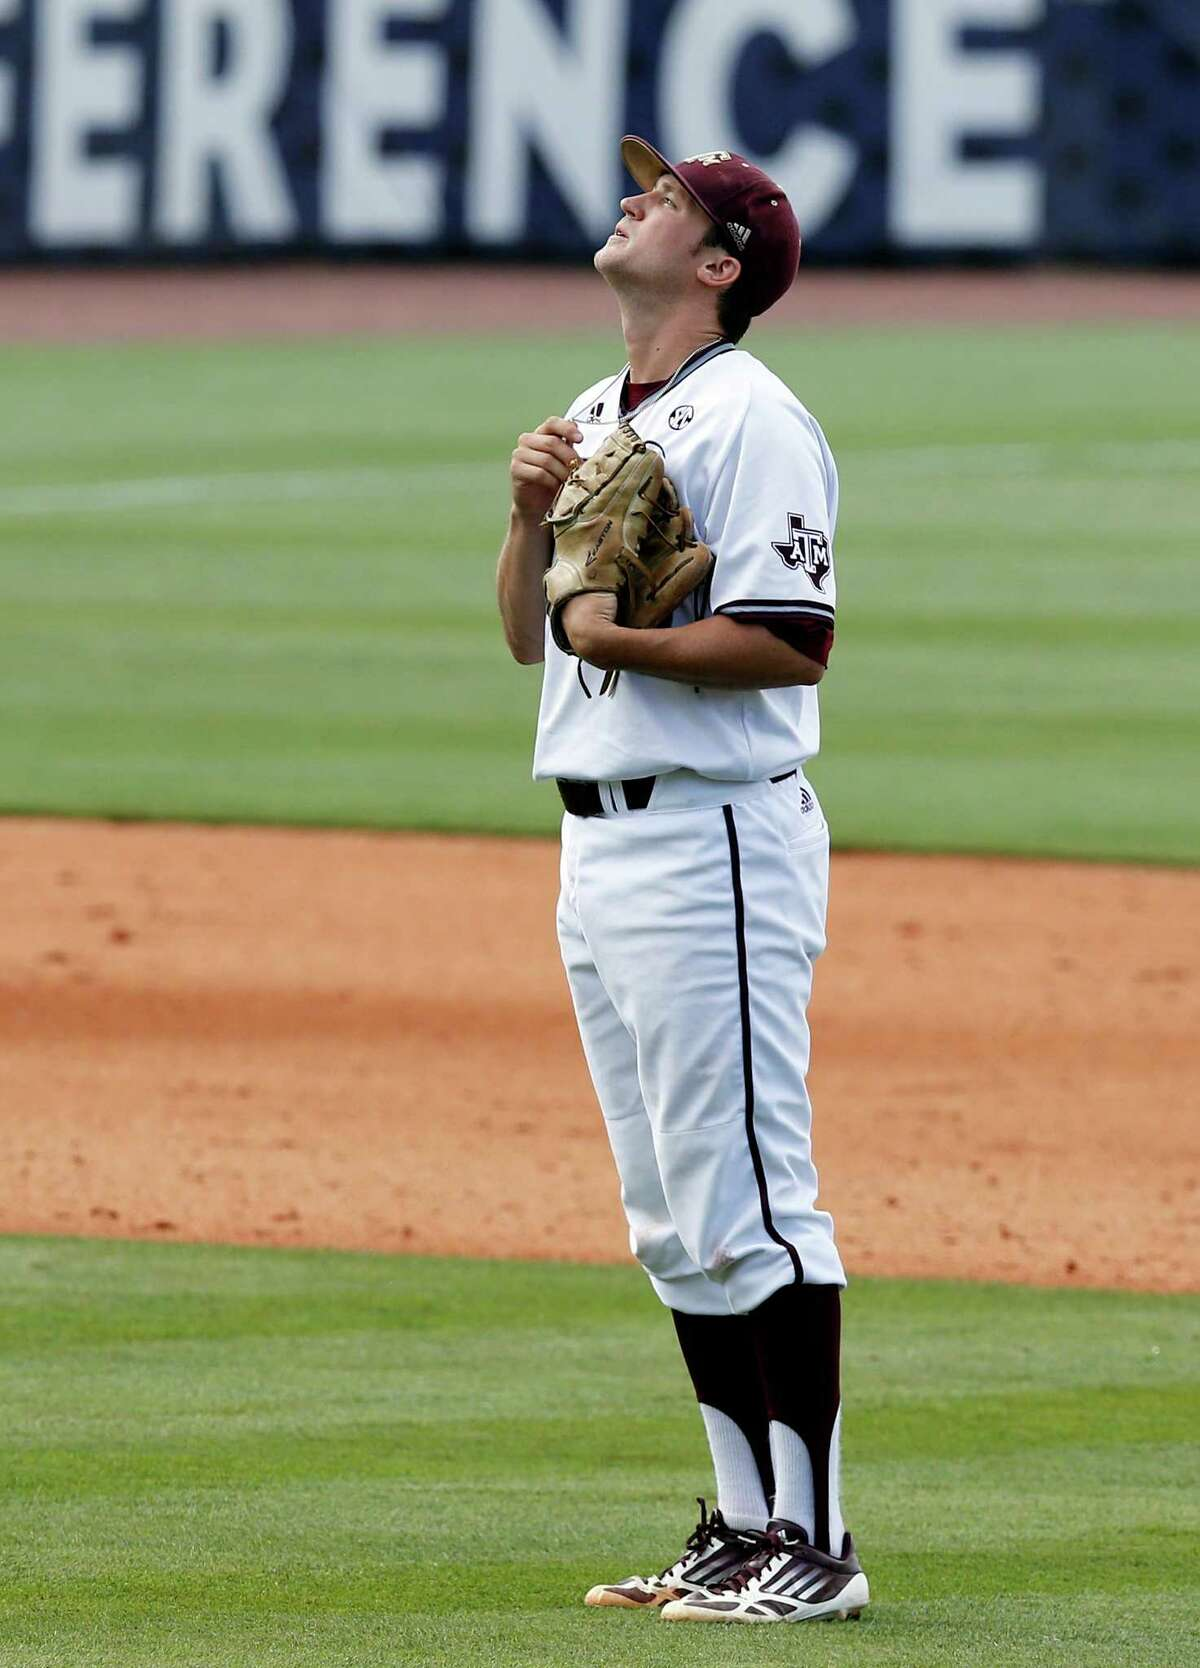 Texas A&M's Andrew Vinson looks up to the sky before pitching in the seventh inning of the Southeastern Conference NCAA college baseball championship game at the Hoover Met, Sunday, May 29, 2016, in Hoover, Ala. Texas A&M won 12-5. (AP Photo/Brynn Anderson)